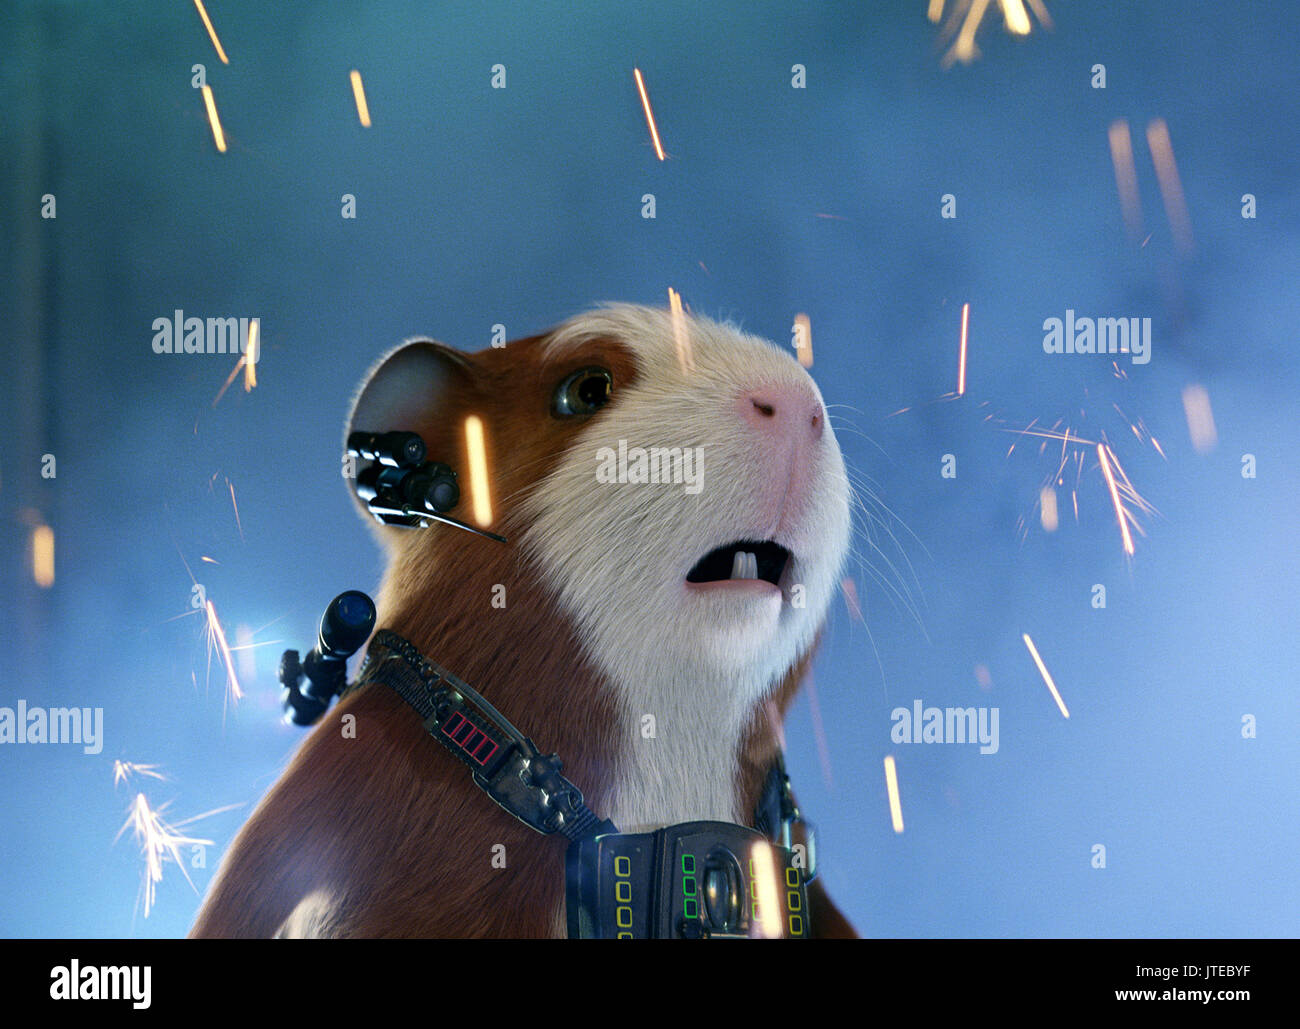 Darwin G Force 2009 Stock Photo Alamy